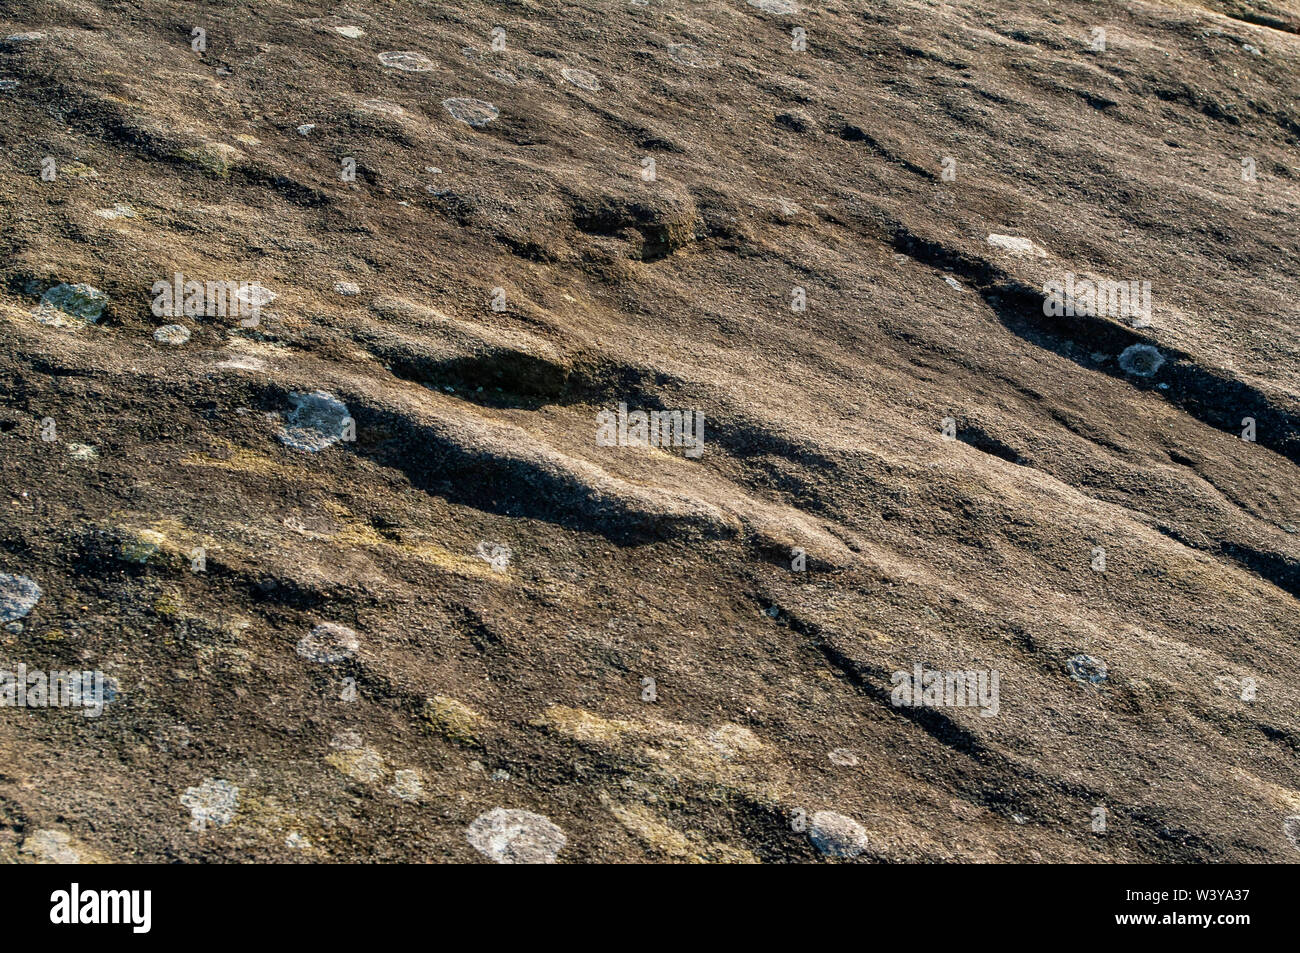 Close-up of a gritstone slab in bright sunshine with small lichen growths at Gardom's Edge, near Baslow, Derbyshire Stock Photo